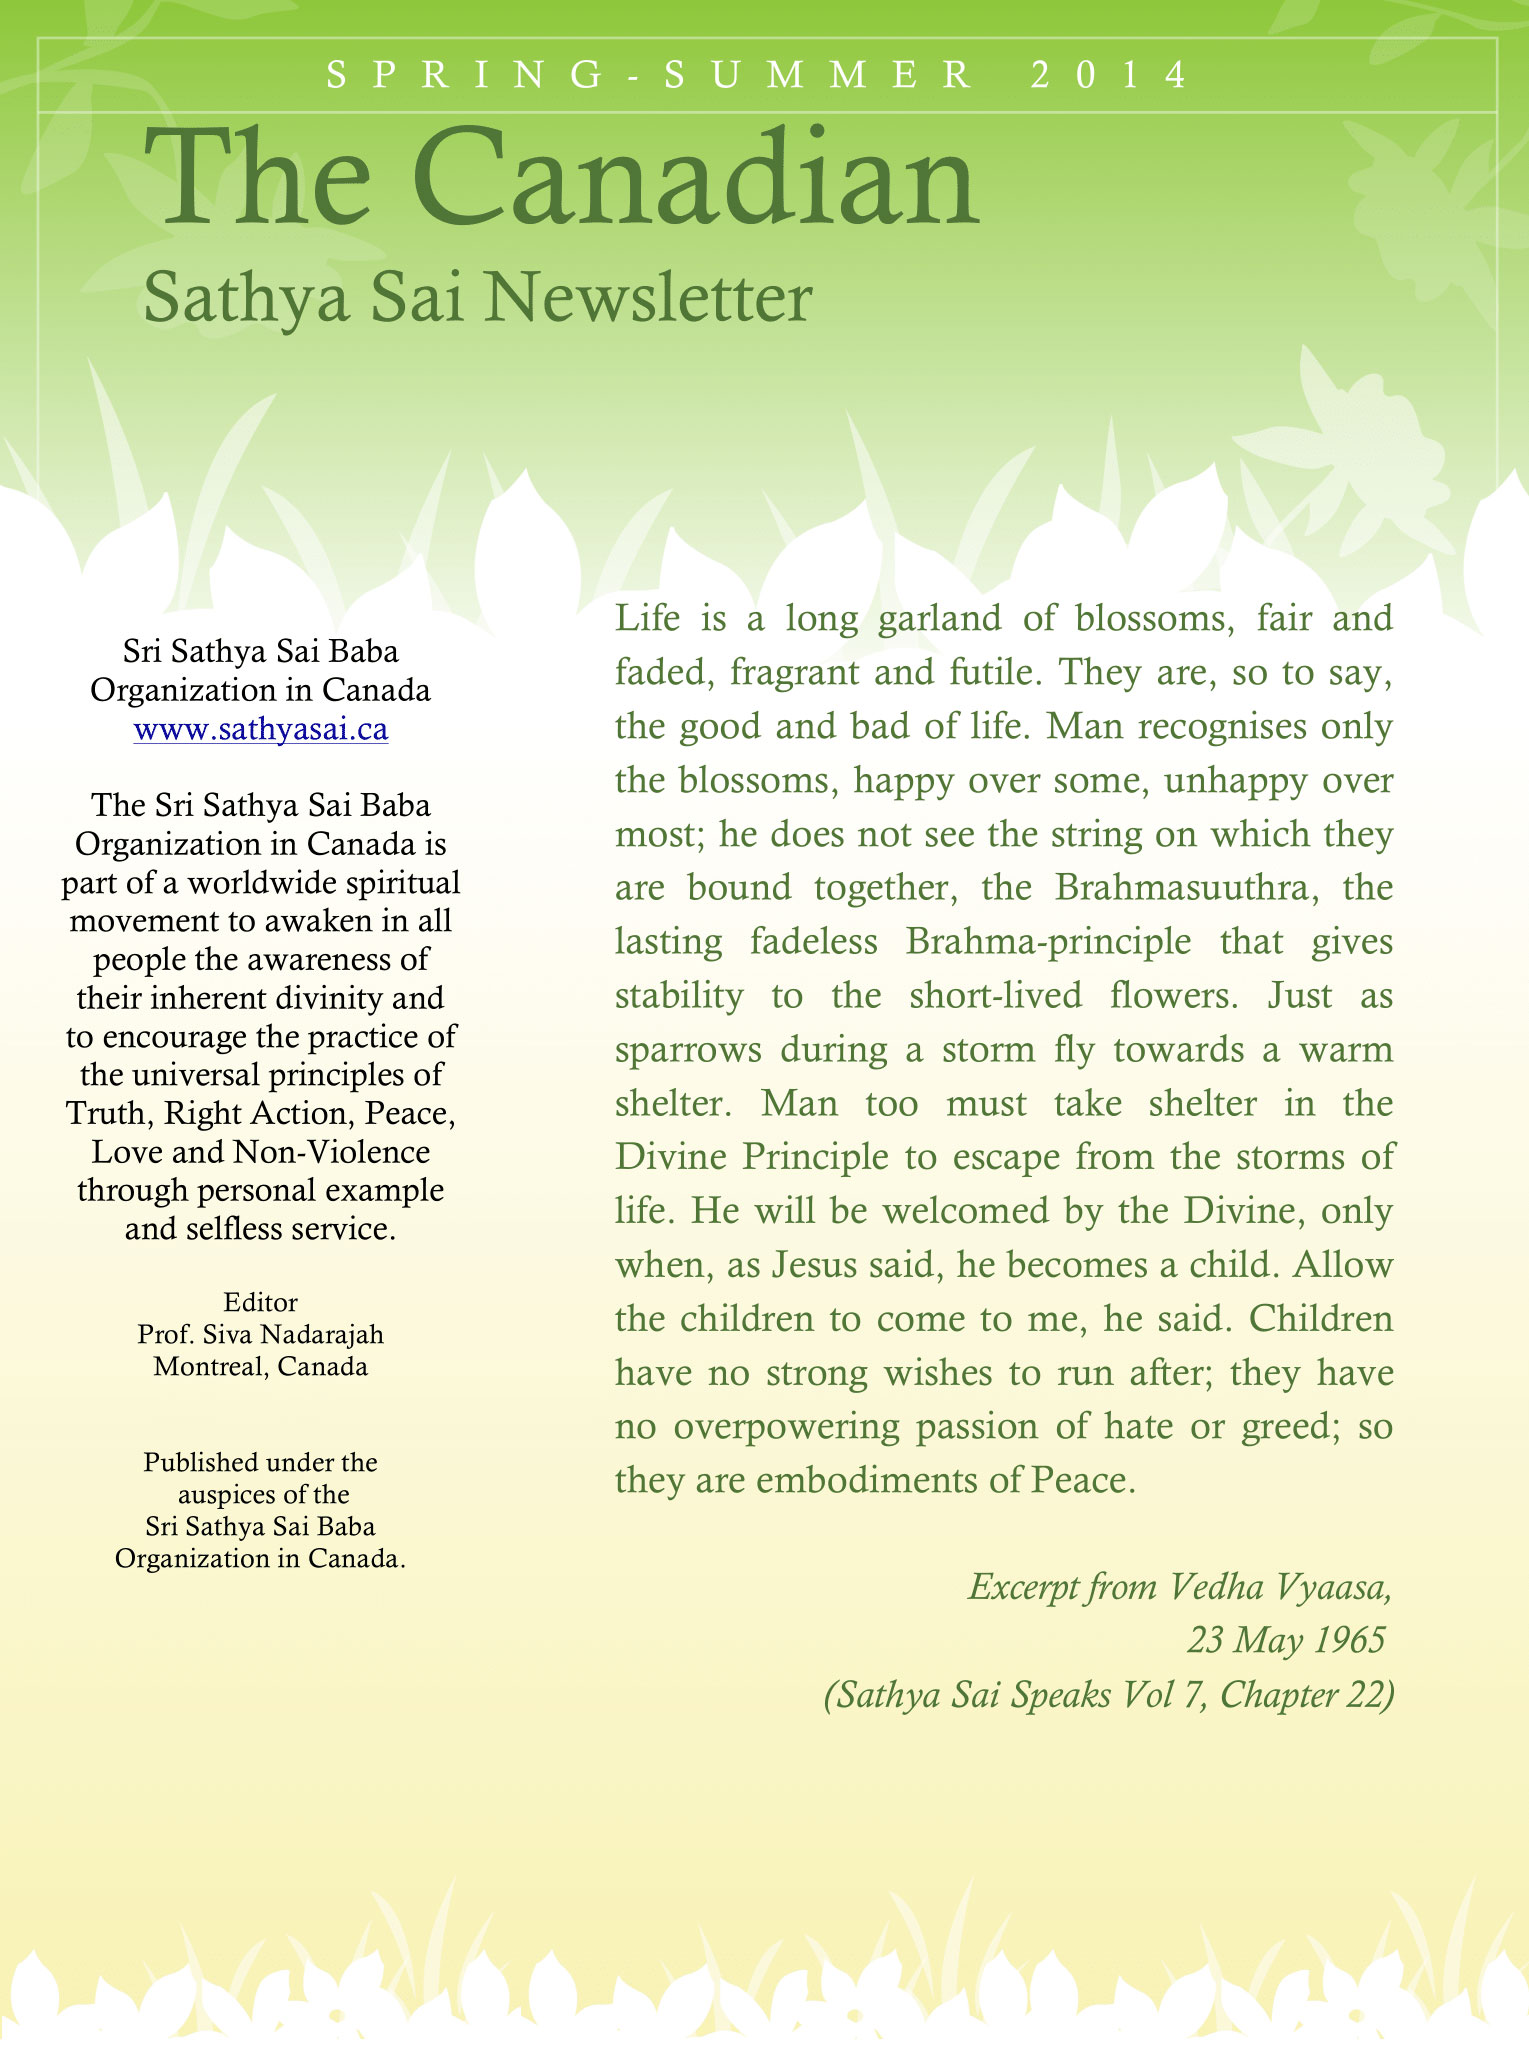 The Canadian Sathya Sai Magazine - Spring-Summer 2014